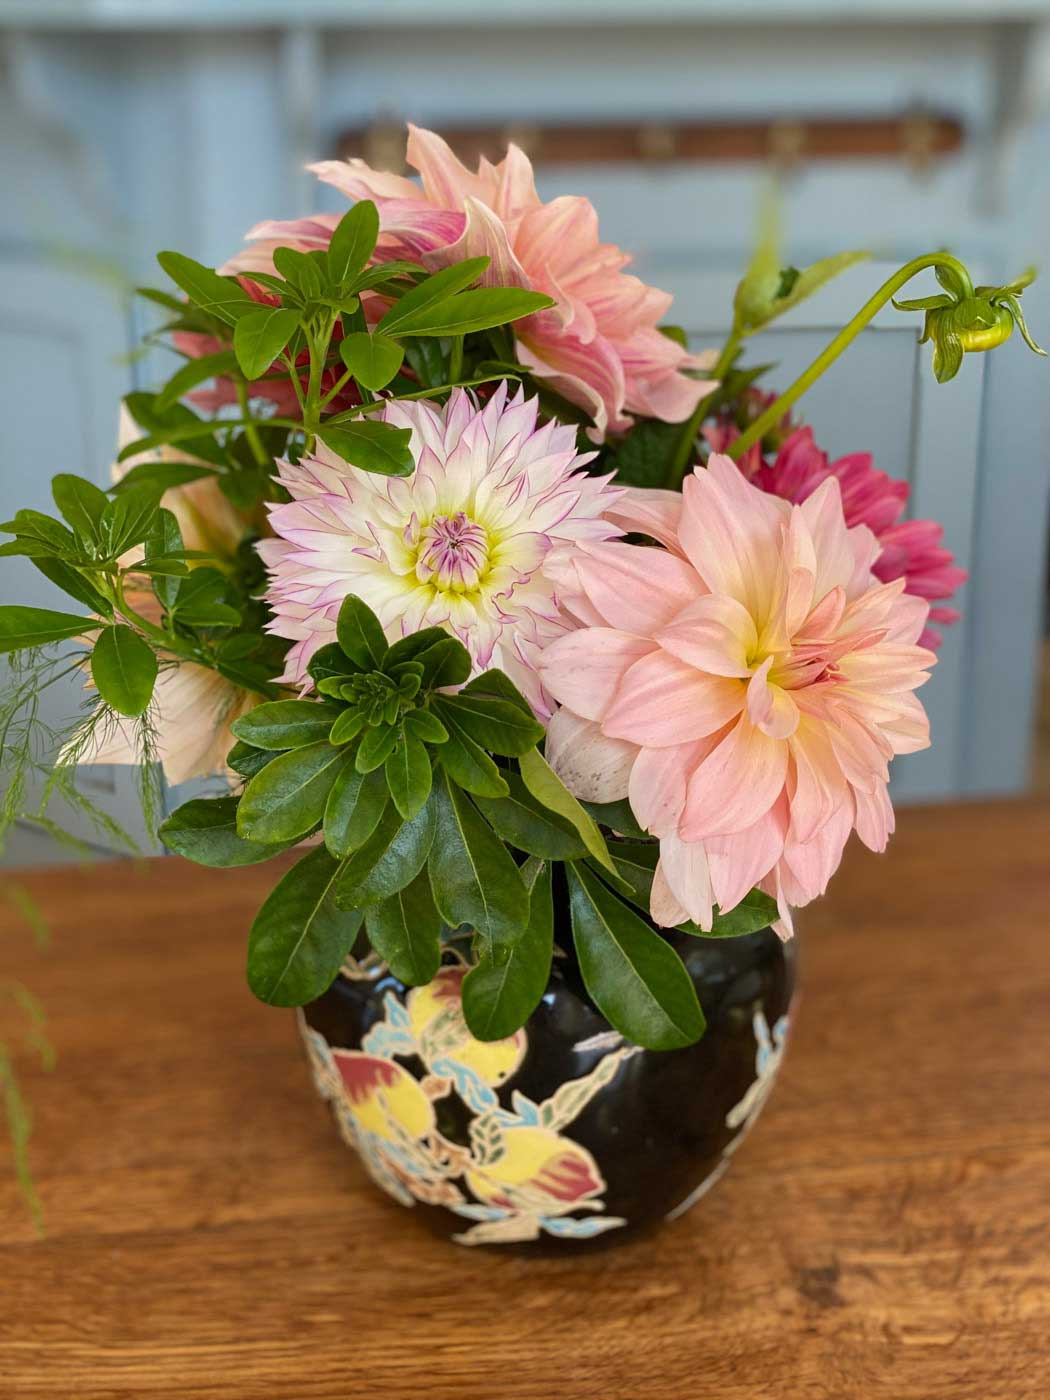 tuto-creer-petits-bouquet-dahlias-art-floral-10